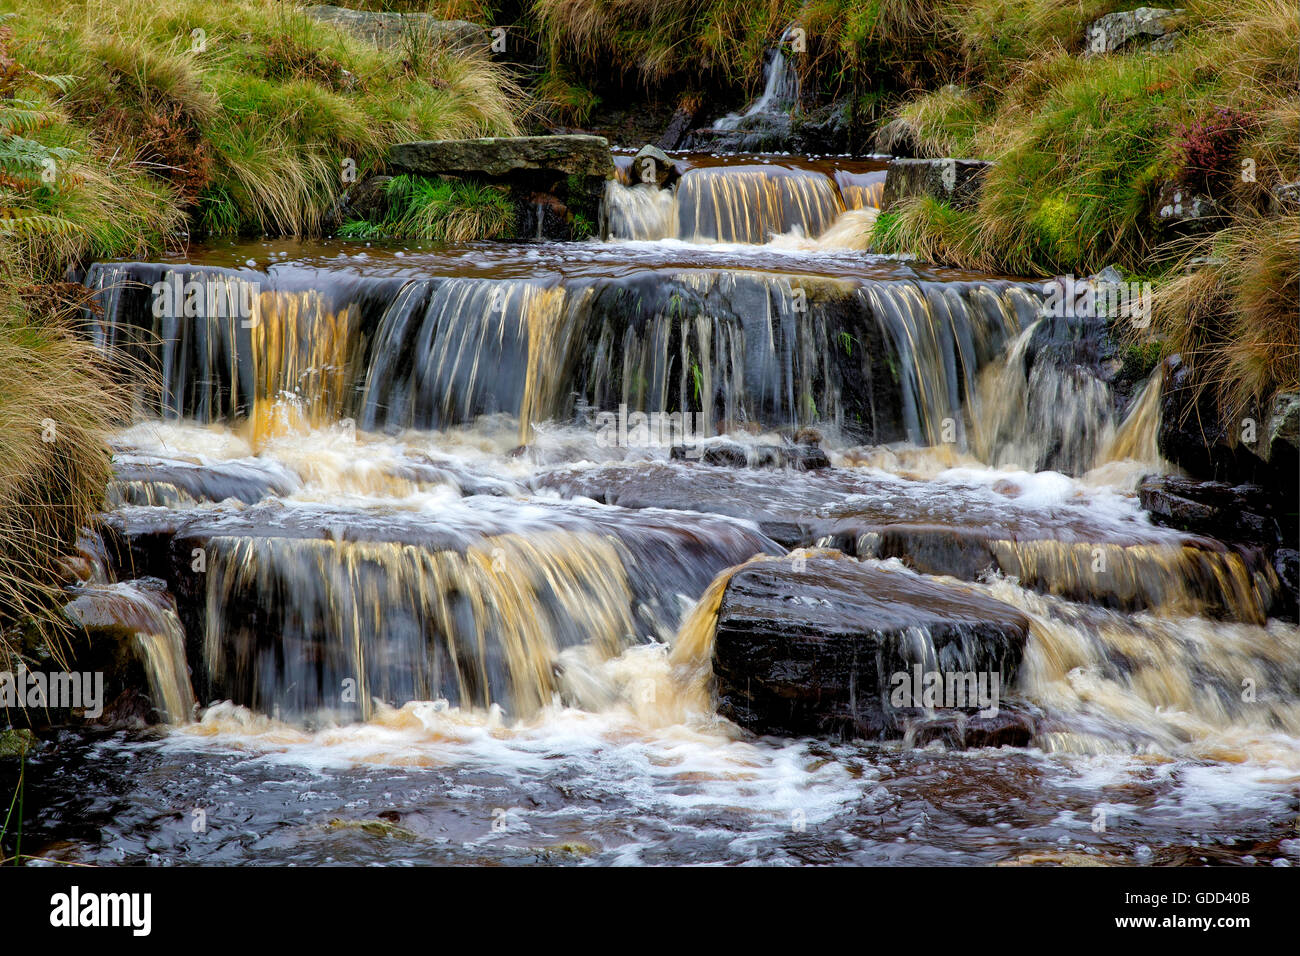 Peat laden water tumbling down waterfalls in the upper reaches of Grindsbrook a clough near Edale on Kinder Scout - Stock Image